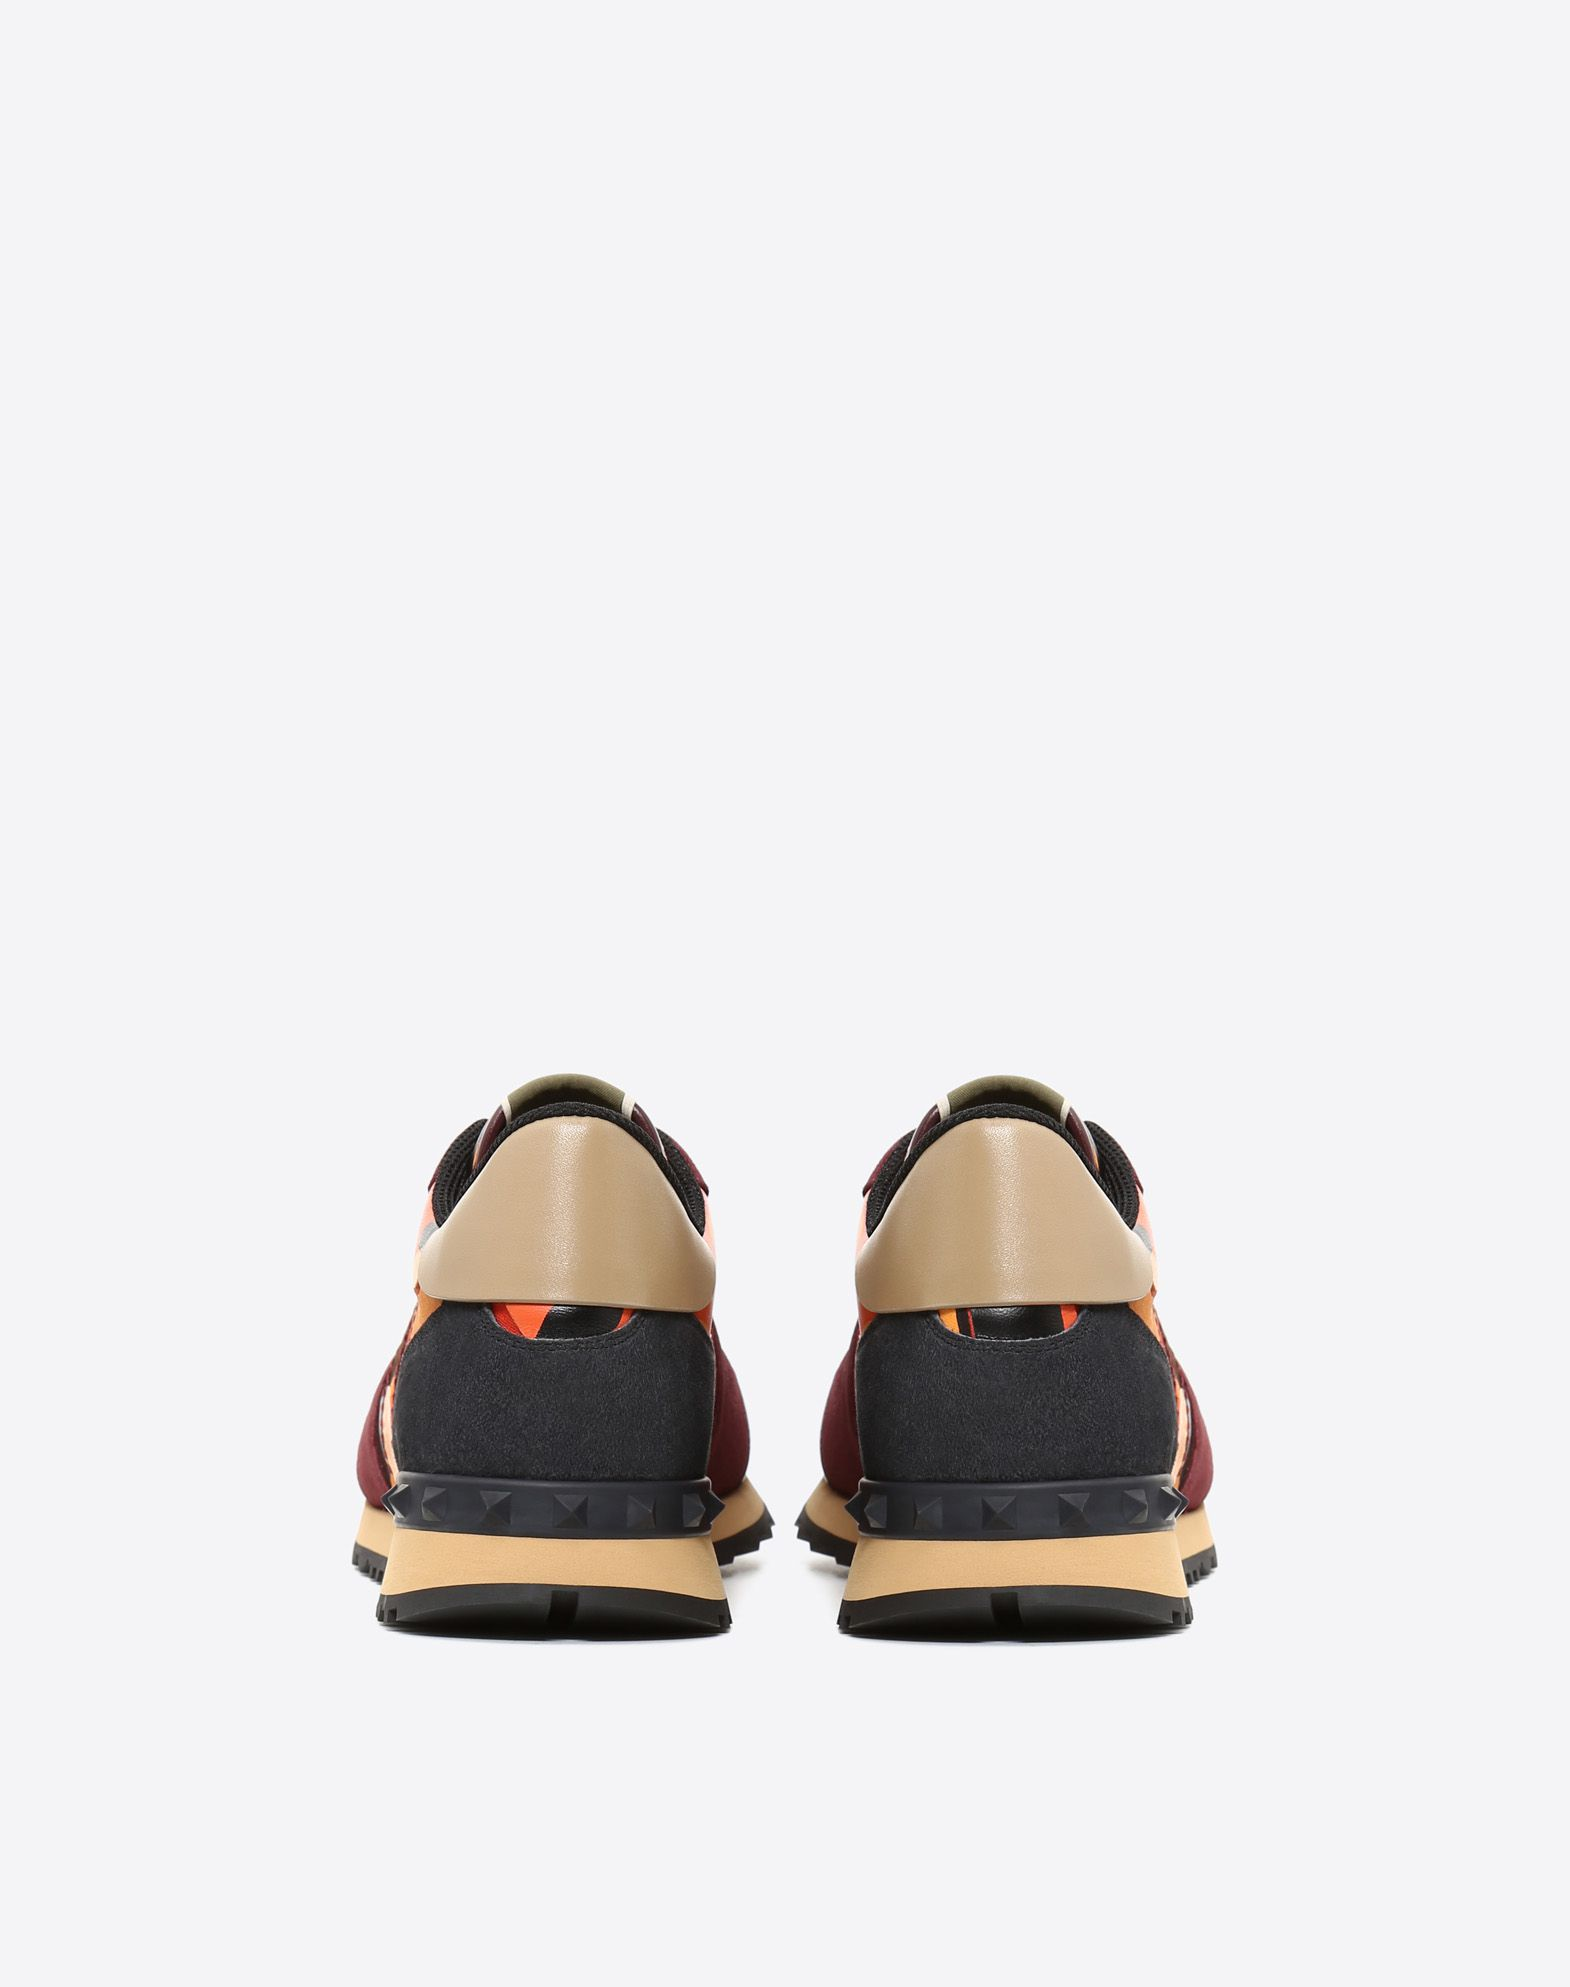 VALENTINO GARAVANI UOMO 迷彩 Rockrunner 运动鞋  LOW-TOP SNEAKERS U d